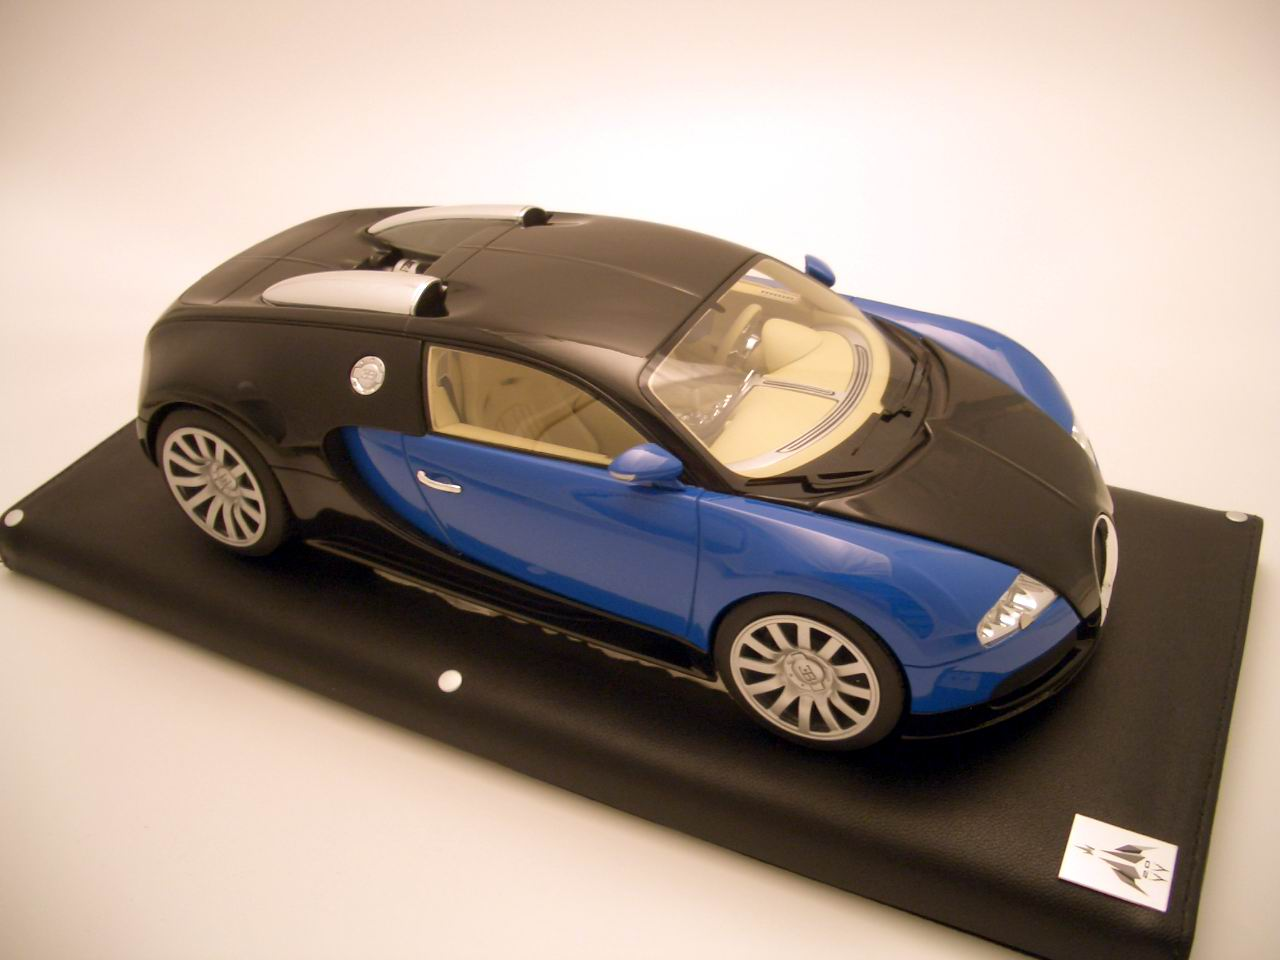 bugatti veyron 16.4 1:18 | mr collection models